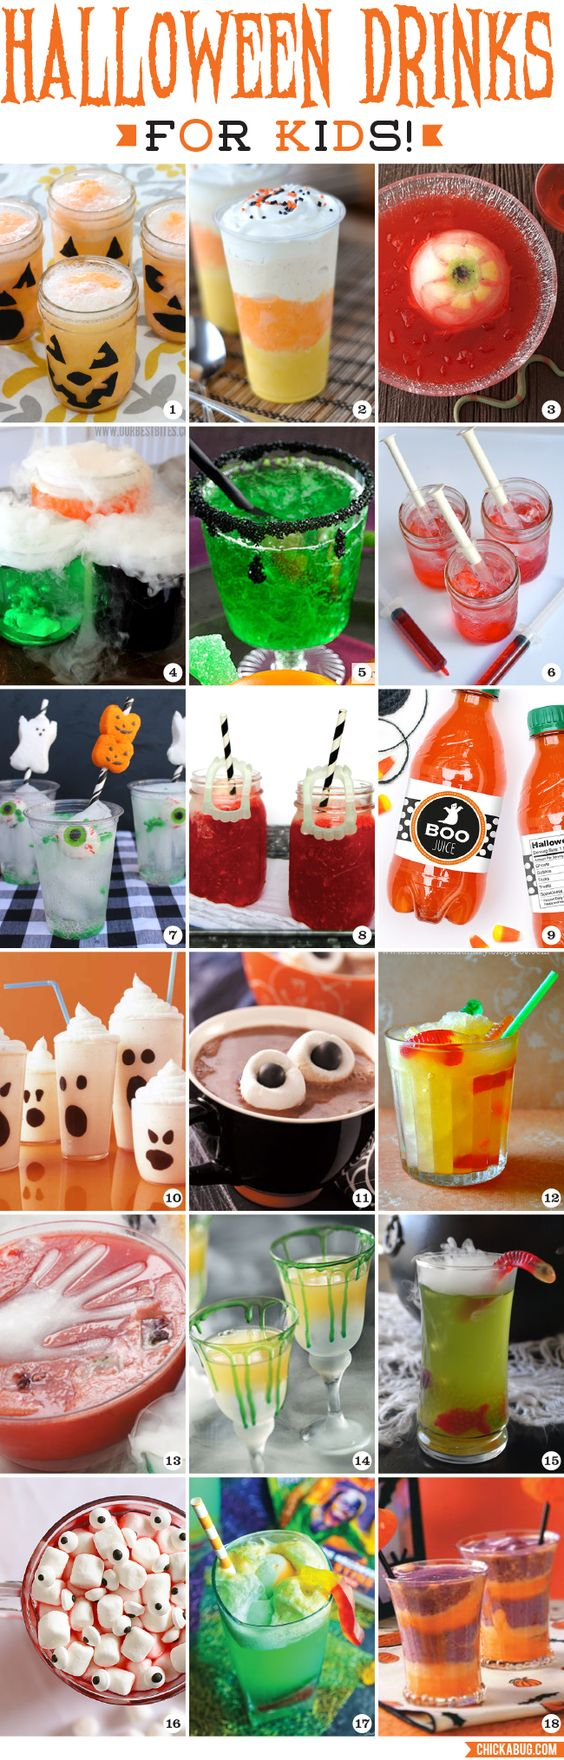 Halloween drinks drinks and halloween on pinterest for Halloween party food ideas for kids